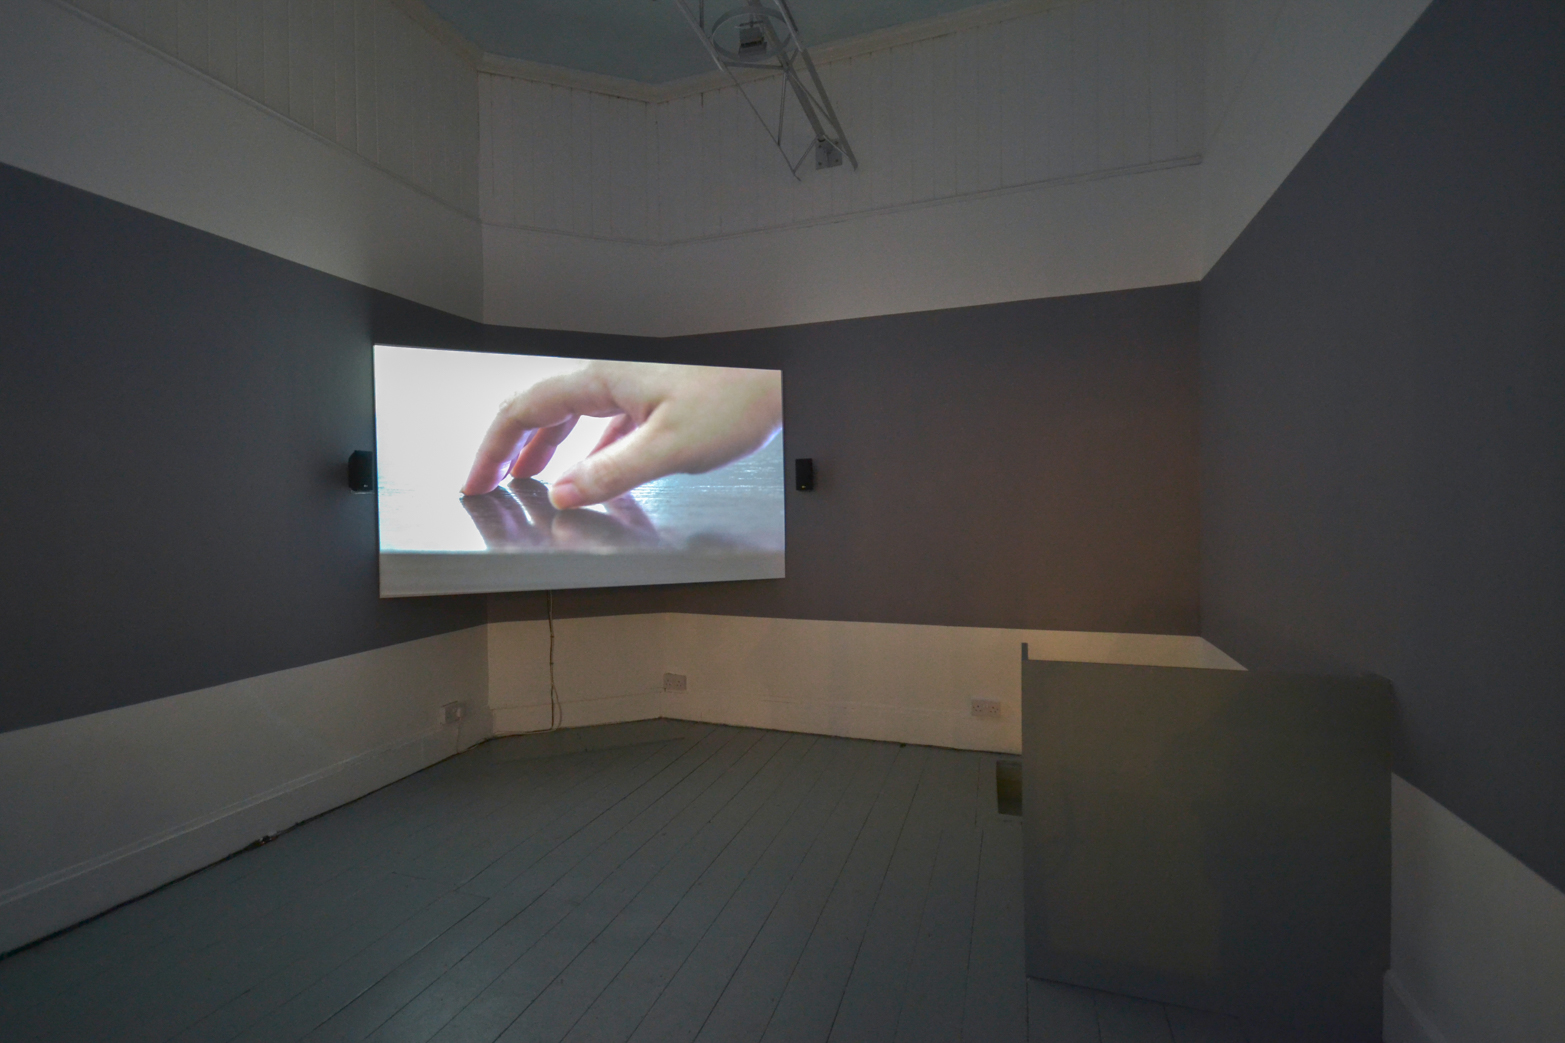 Ilona Sagar, Human Factors, 2014, installation view at Tenderpixel.